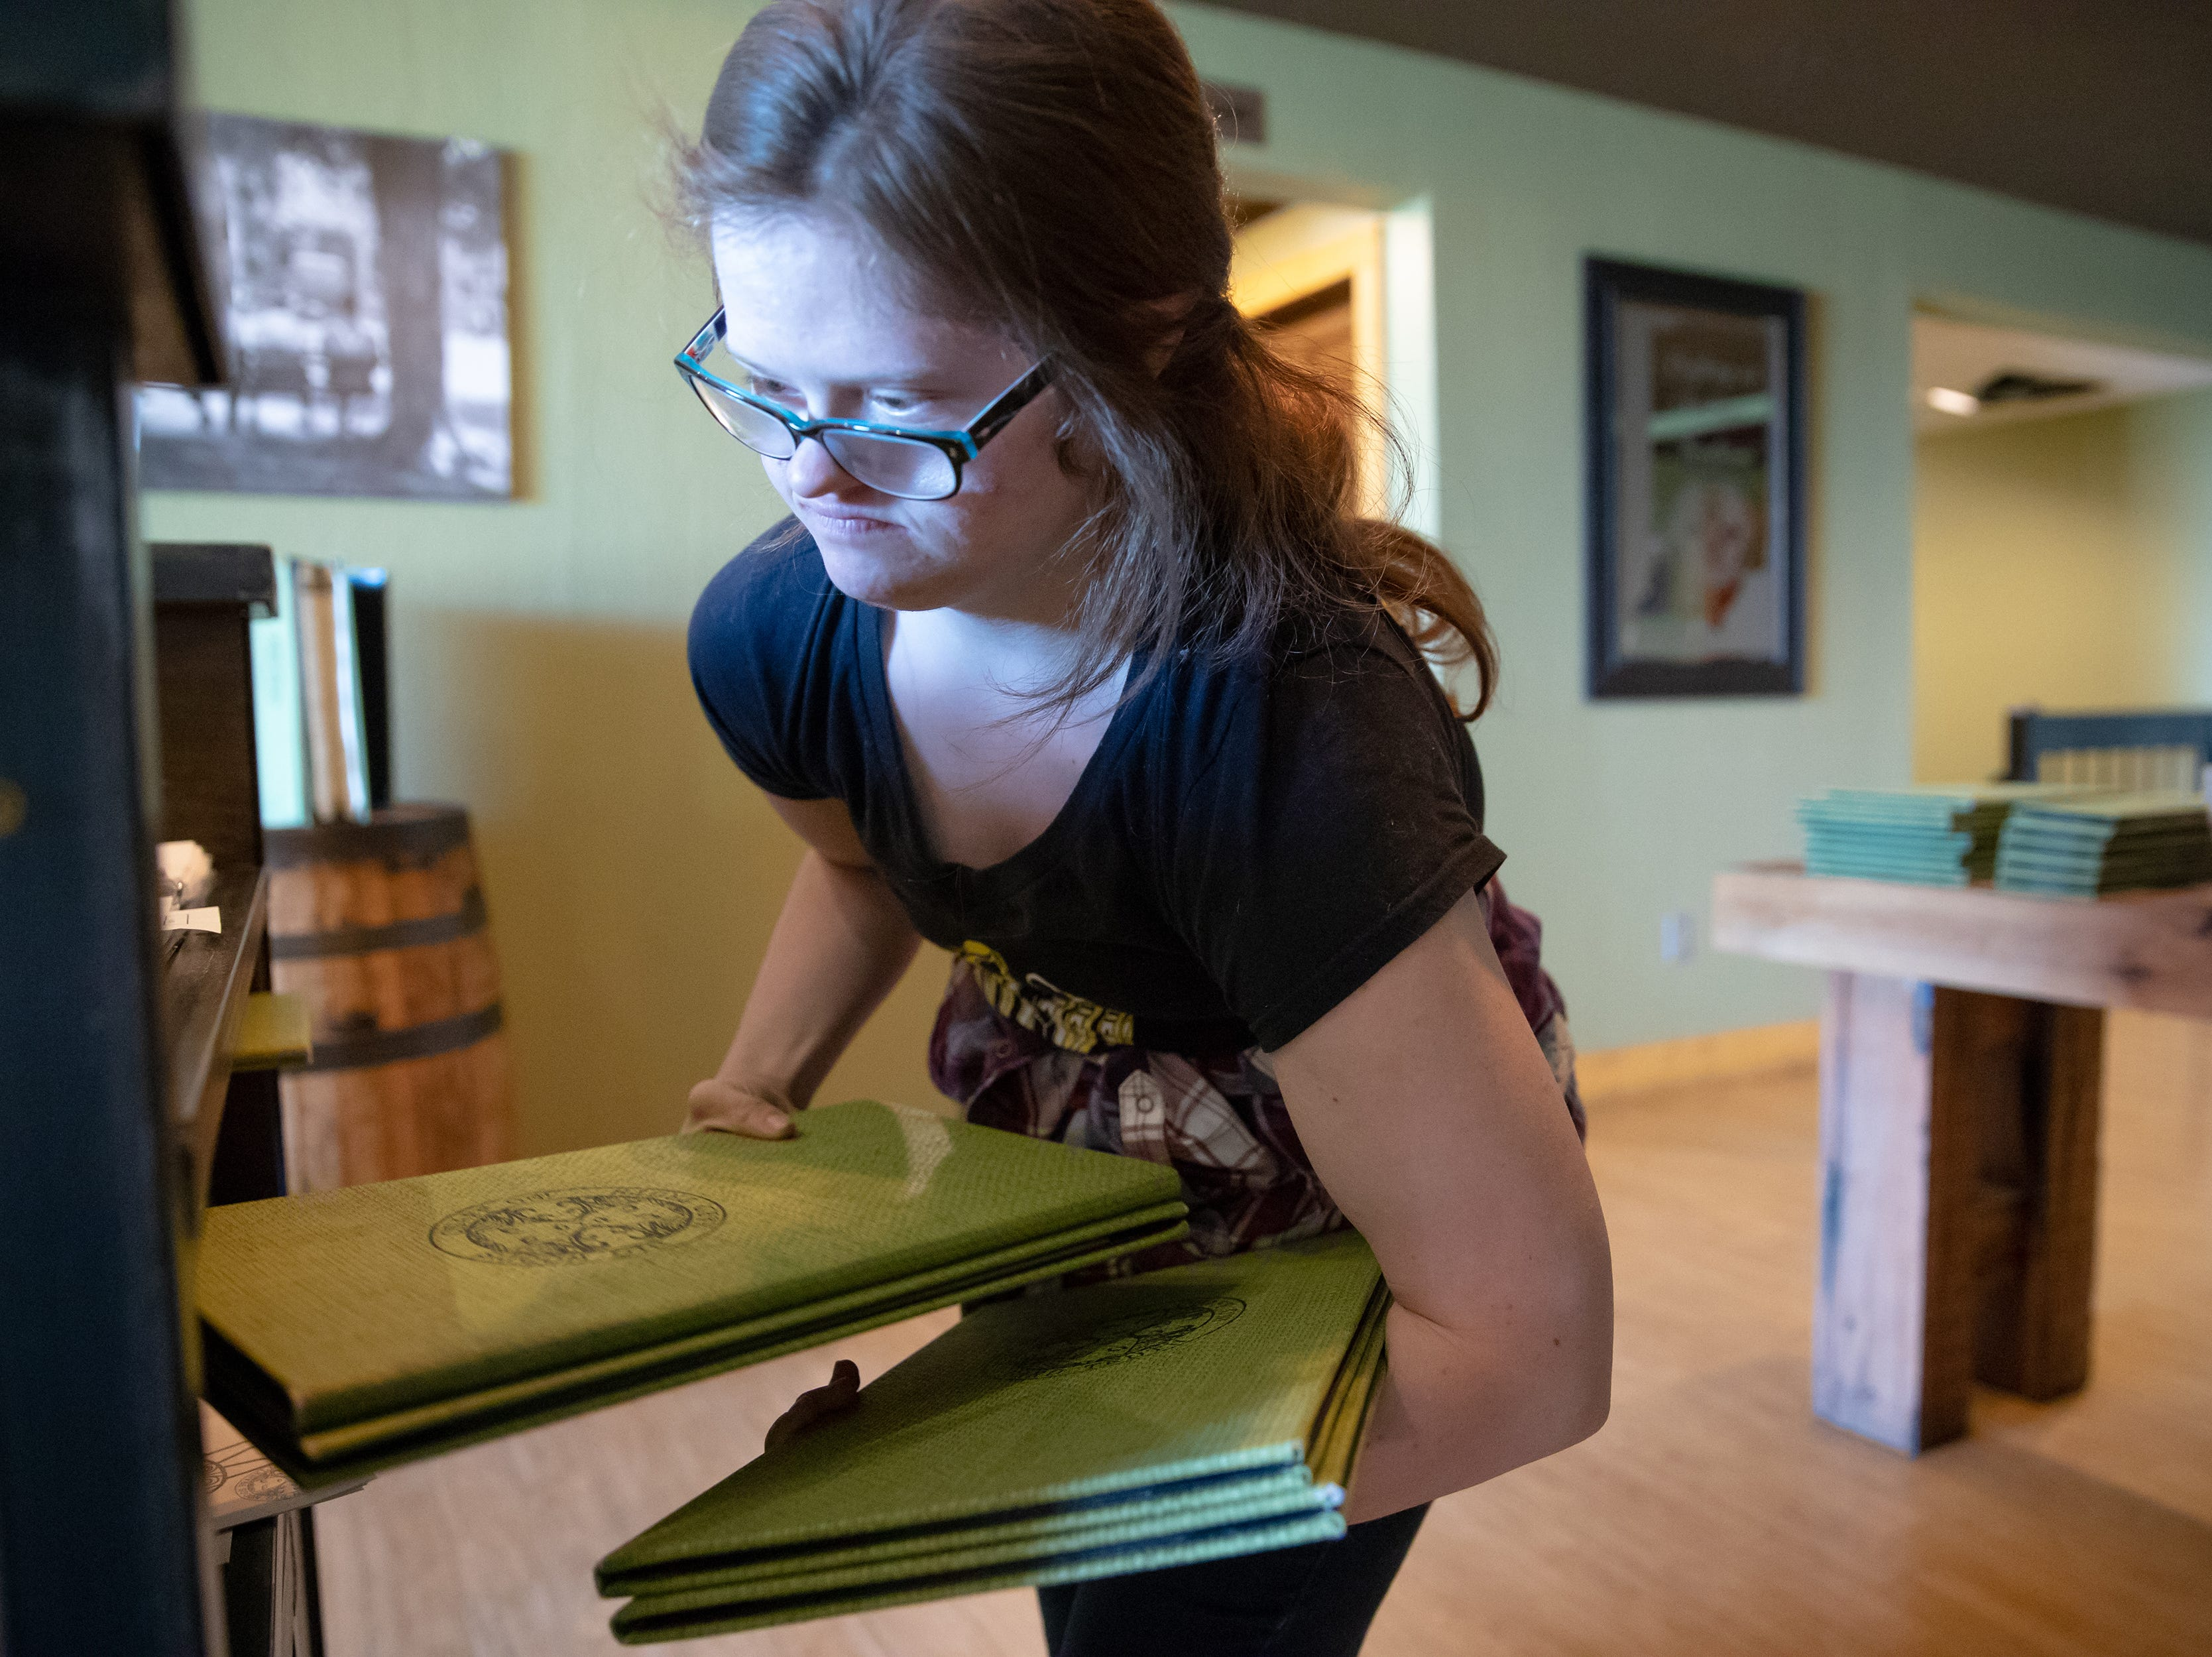 Mickey gathers menus while on shift at Big Woods in Franklin, Ind., on Thursday, Oct. 18, 2018.